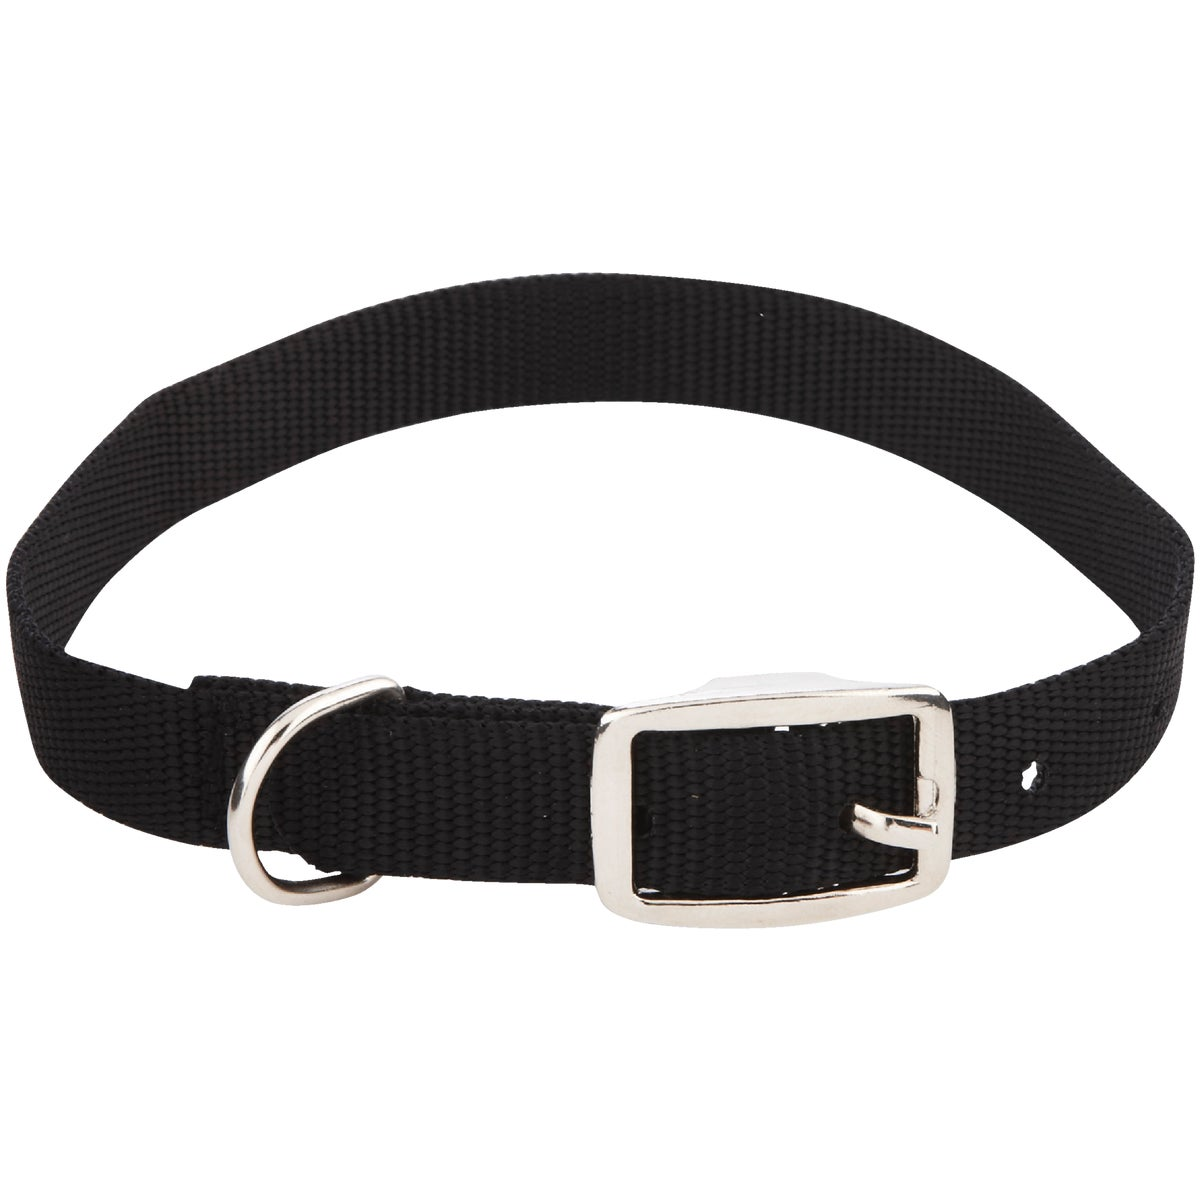 3/4X20 NYLON COLLAR - 31420 by Westminster Pet